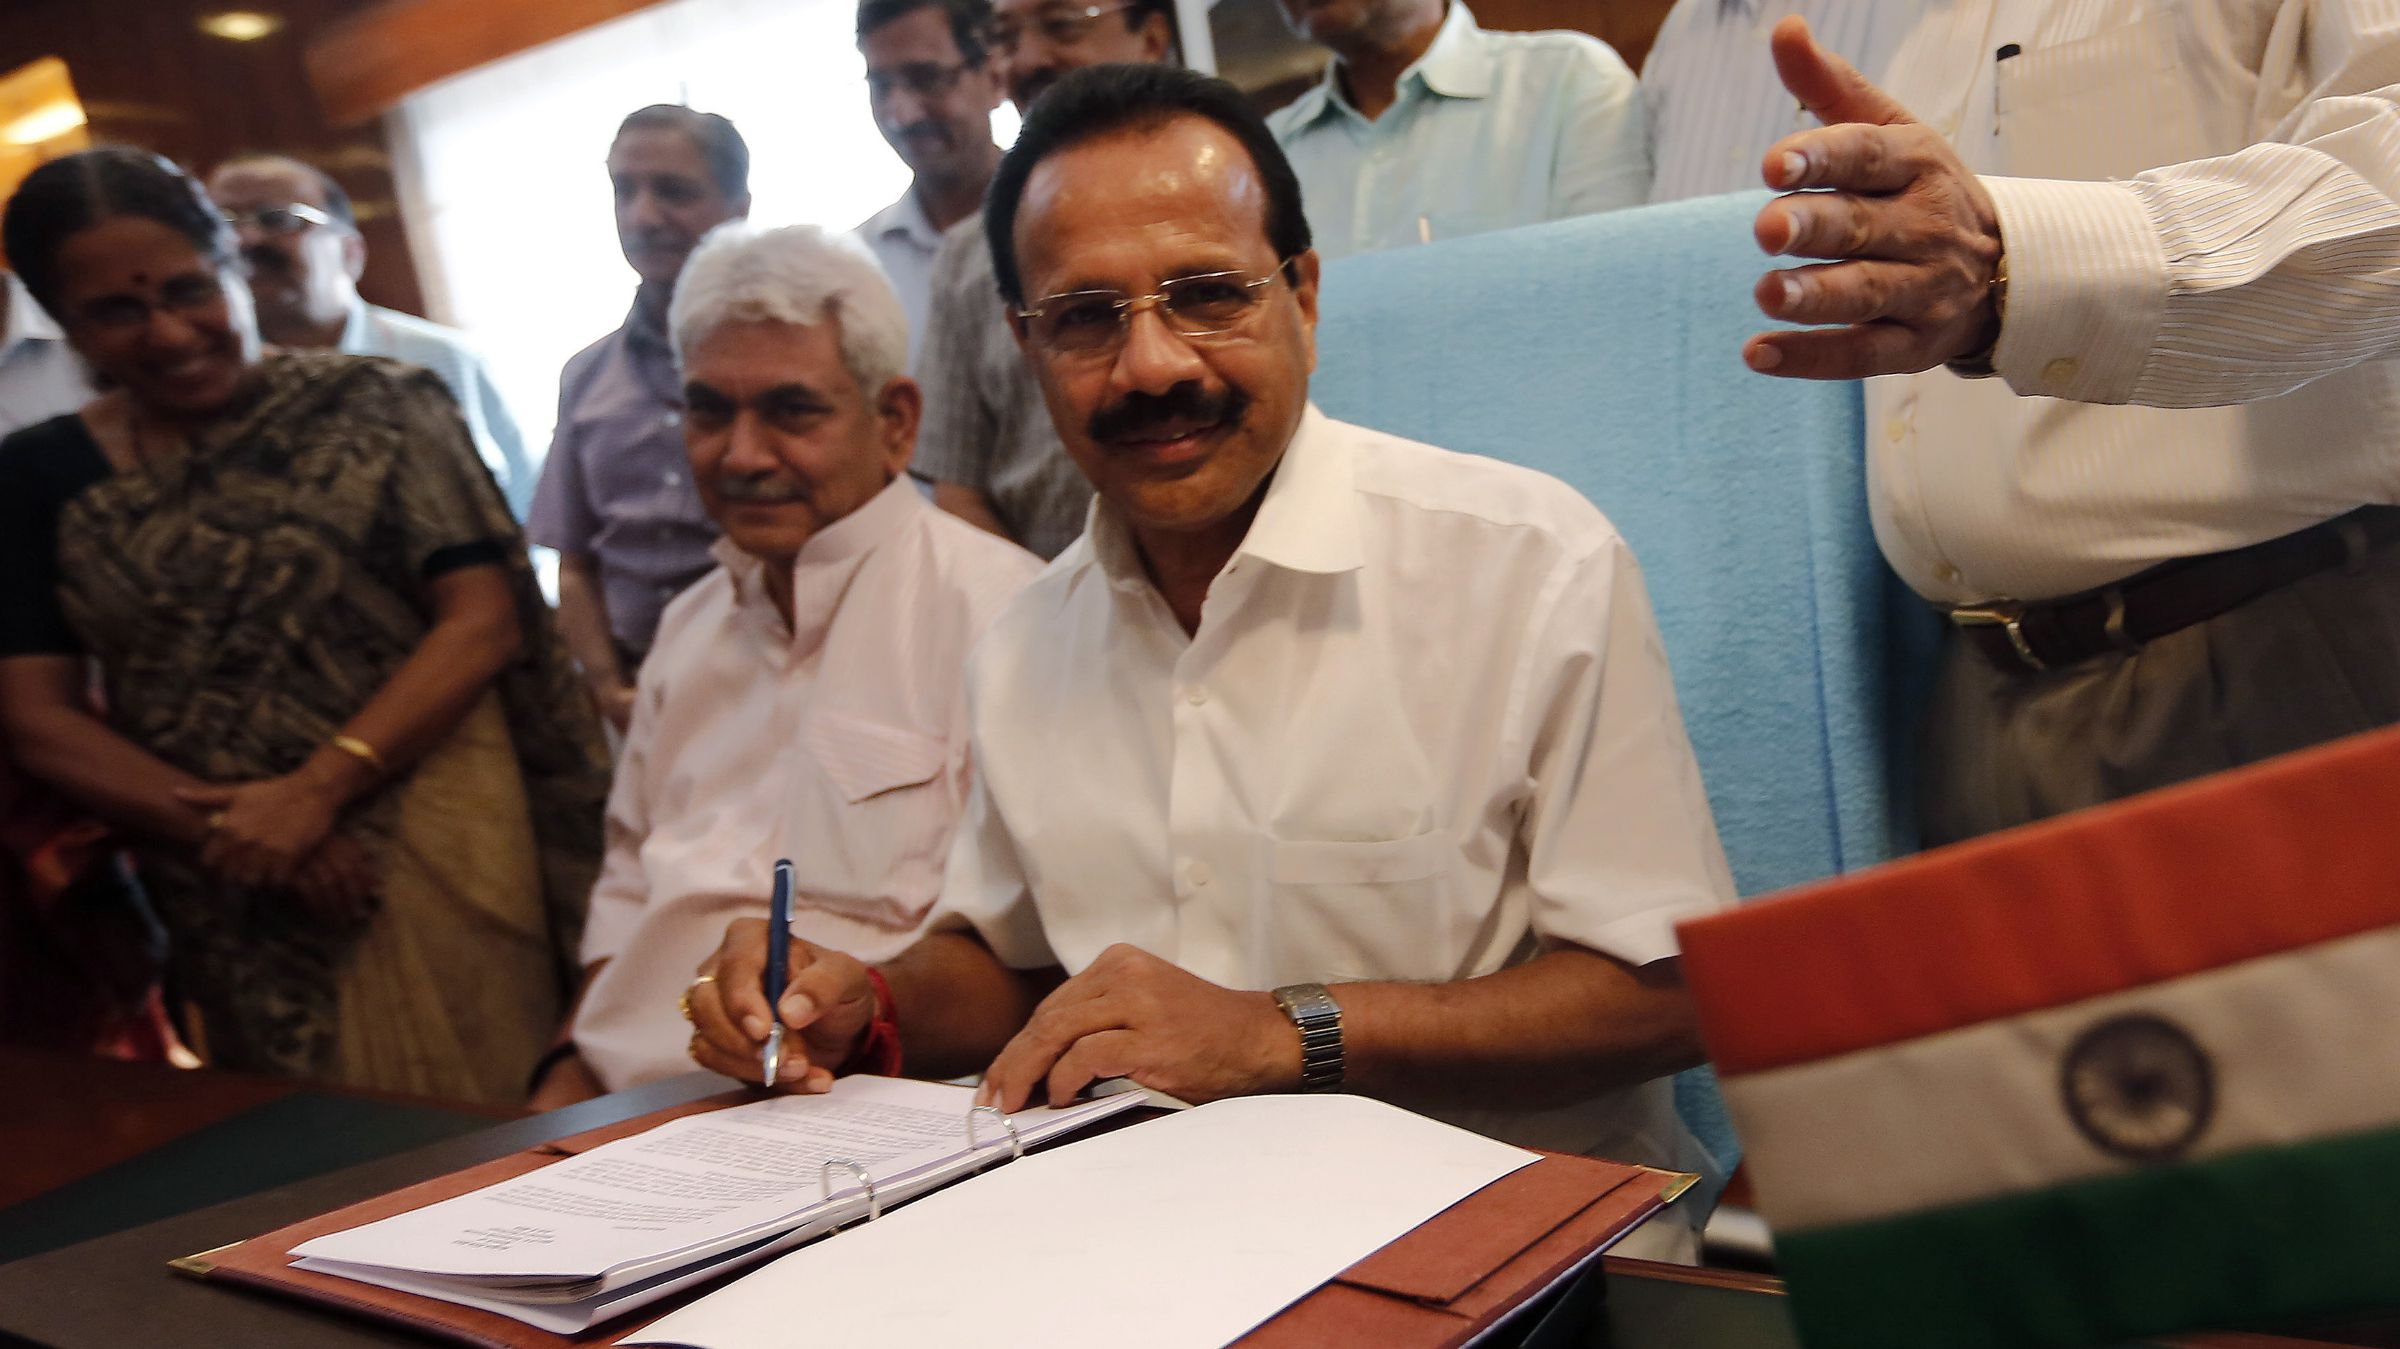 India's Railway Minister Sadananda Gowda (C) poses after giving the final touches to the railway budget for the 2014/15 fiscal year, in New Delhi July 7, 2014. On Tuesday, Indian Prime Minister Narendra Modi's new government will unveil its maiden railways budget, with expectations high that he will offer bold plans to improve the service - a lifeline for 23 million Indians every day. REUTERS